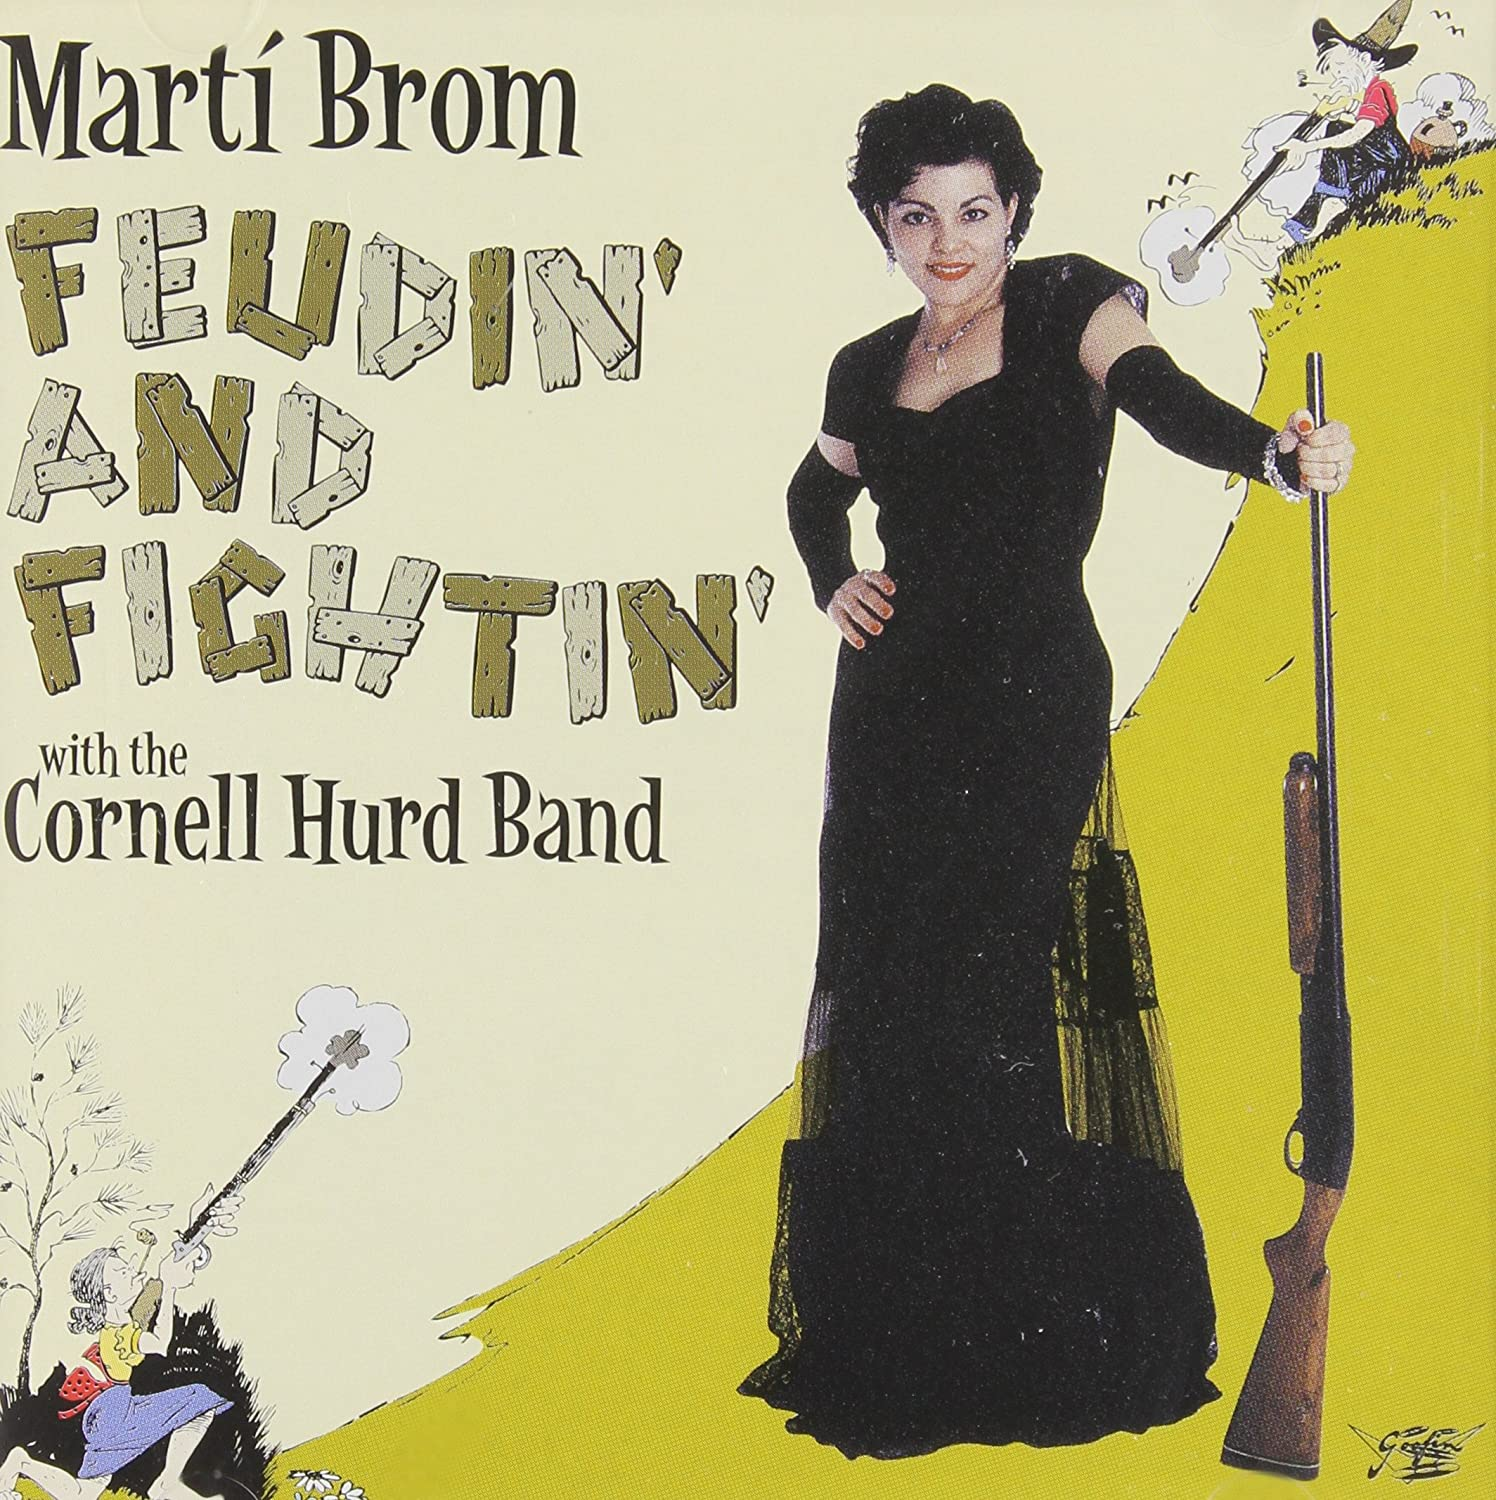 Feudin Fightin With the Cornell Hurd Band sold Direct store out